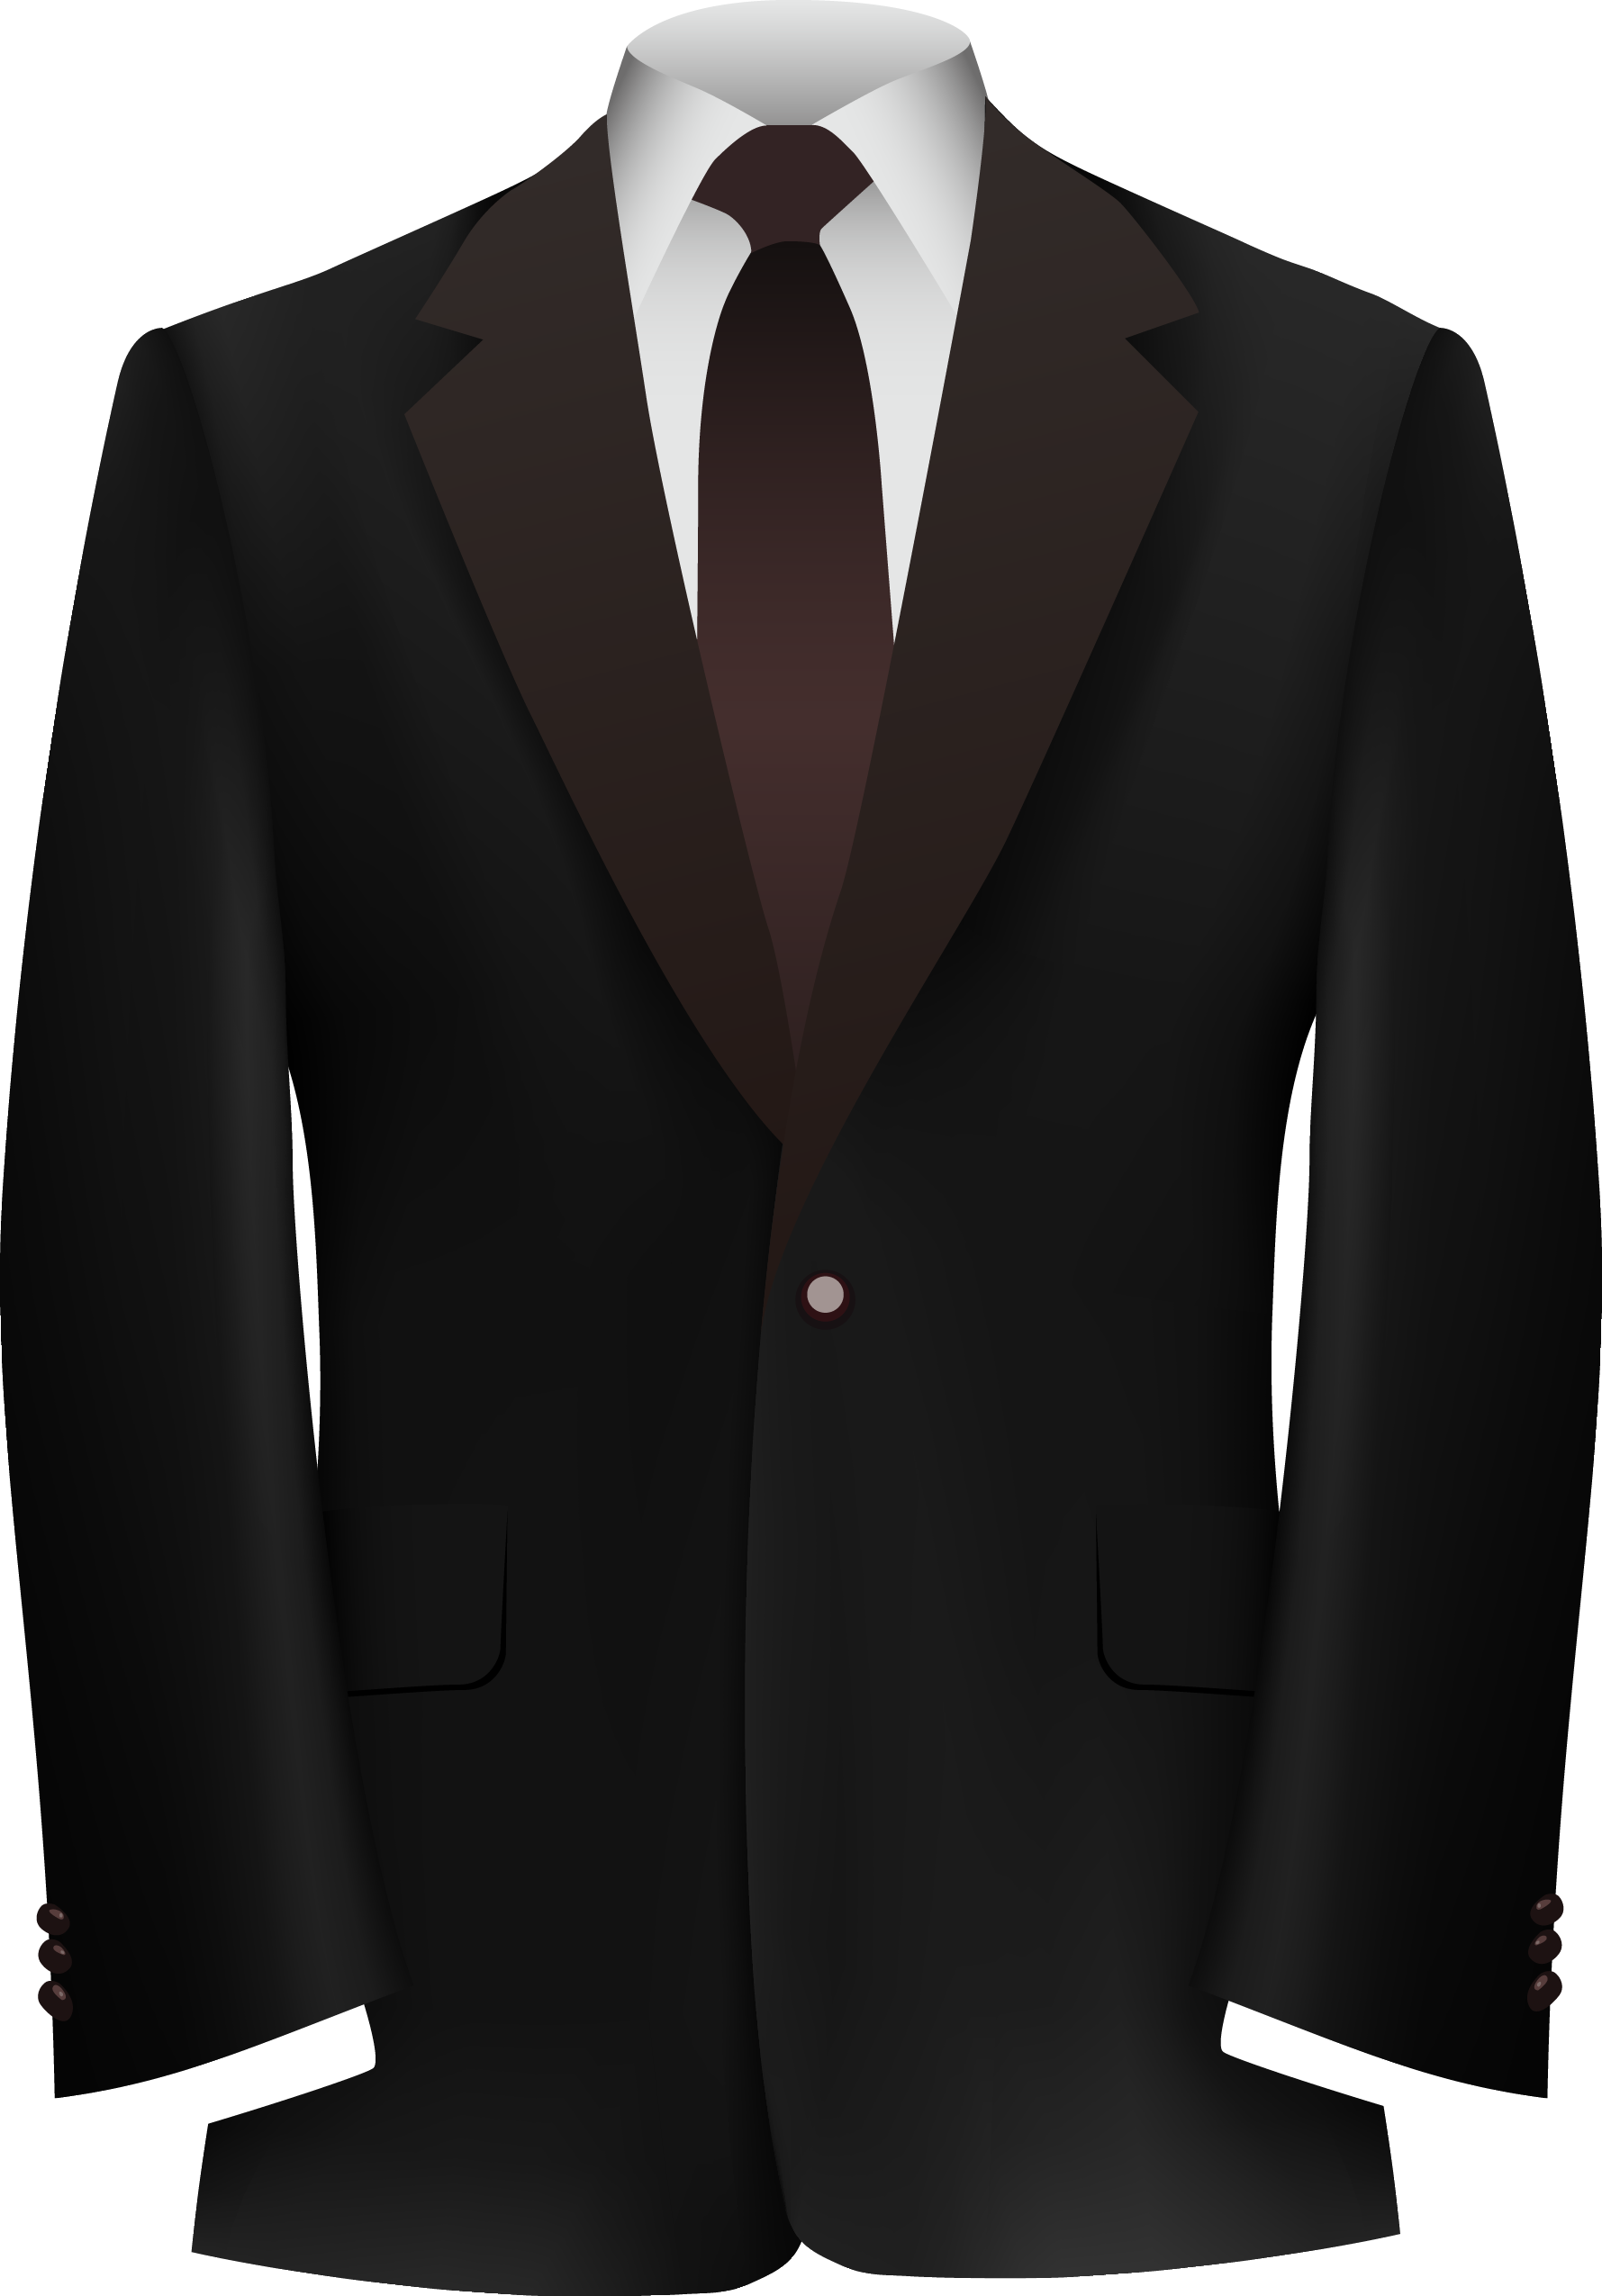 clip black and white stock Vector costume tuxedo dress. Suit clothing formal wear